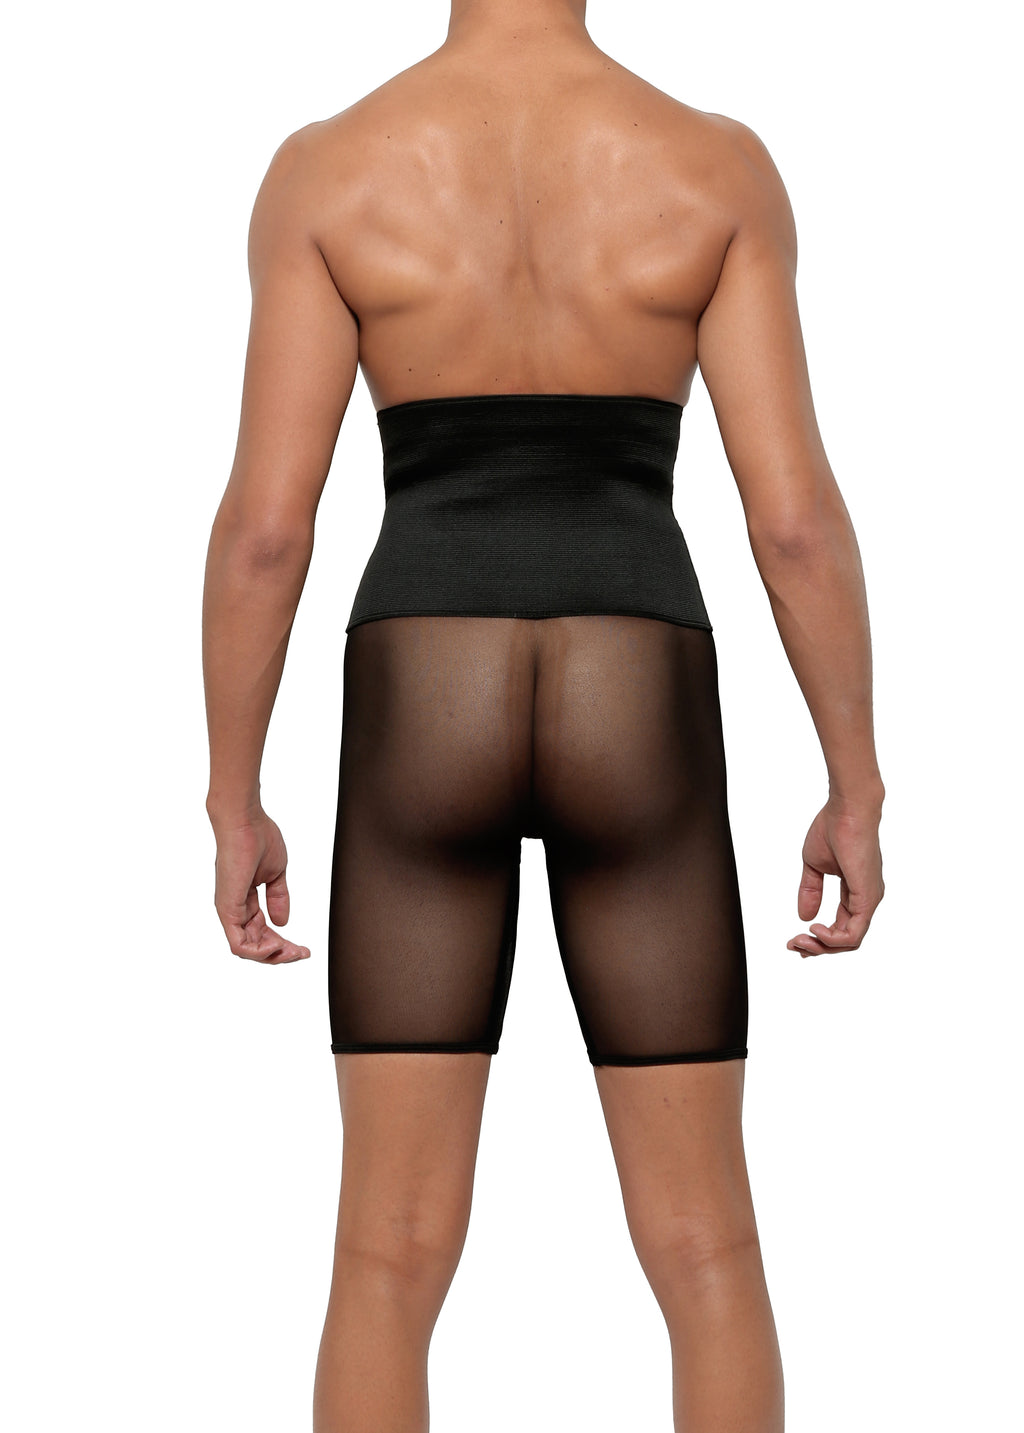 HIGH WAIST CONTROL BRIEF in MICRO-MESH - MENAGERIE Intimates MENS Lingerie